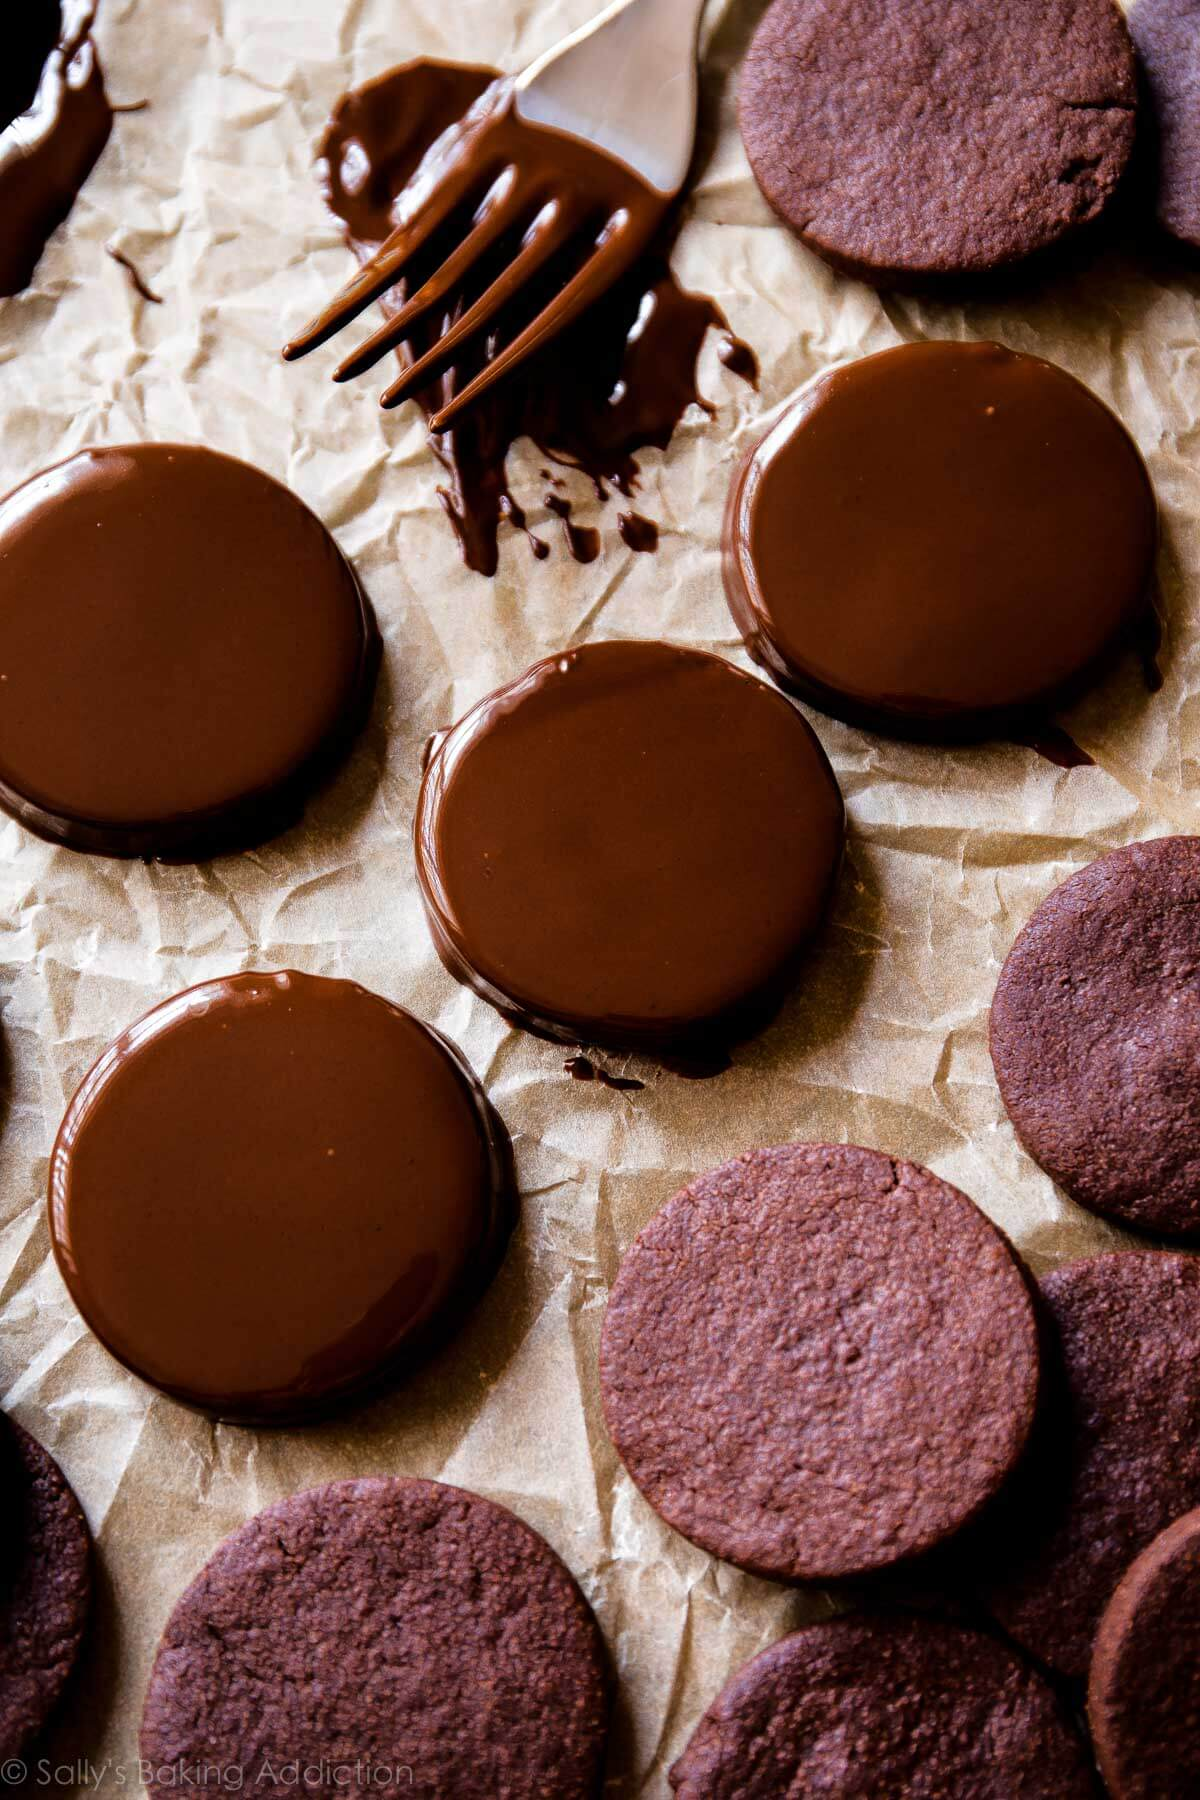 Homemade thin mint cookies! Copycat girl scout thin mints recipe with chocolate cookies on sallysbakingaddiction.com